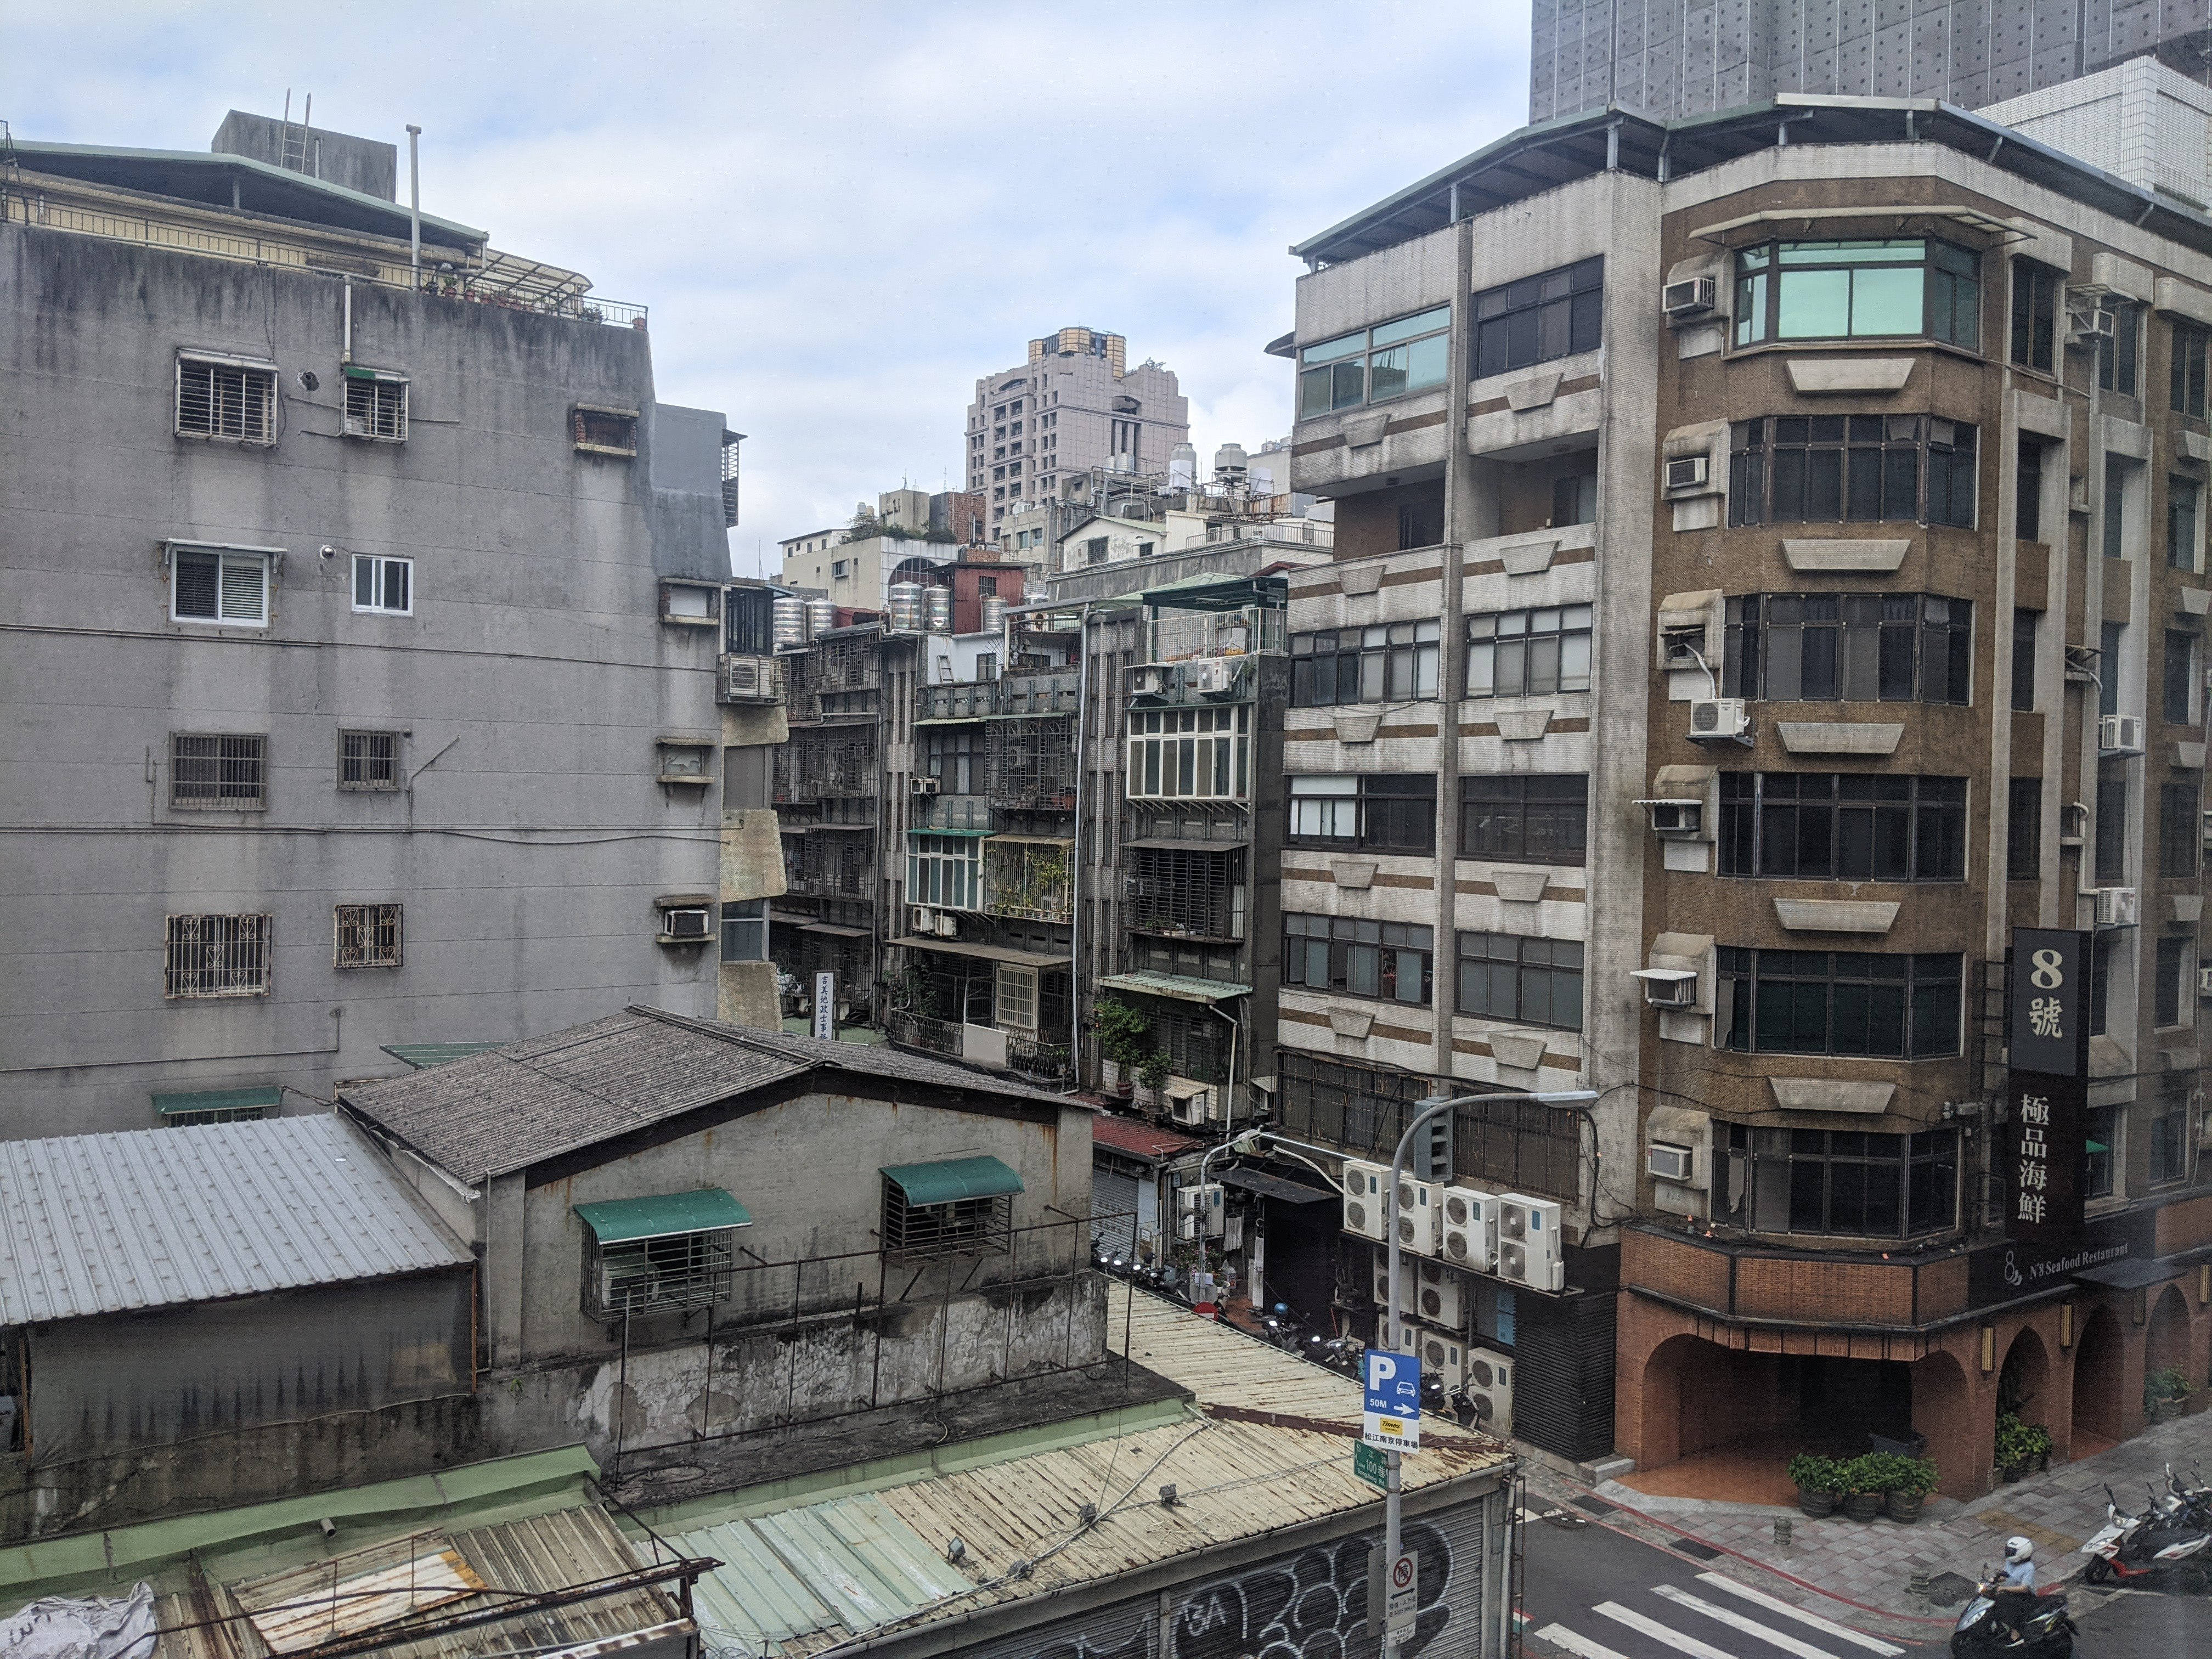 a view of several buildings in taipei, showing some balconies with plants on them